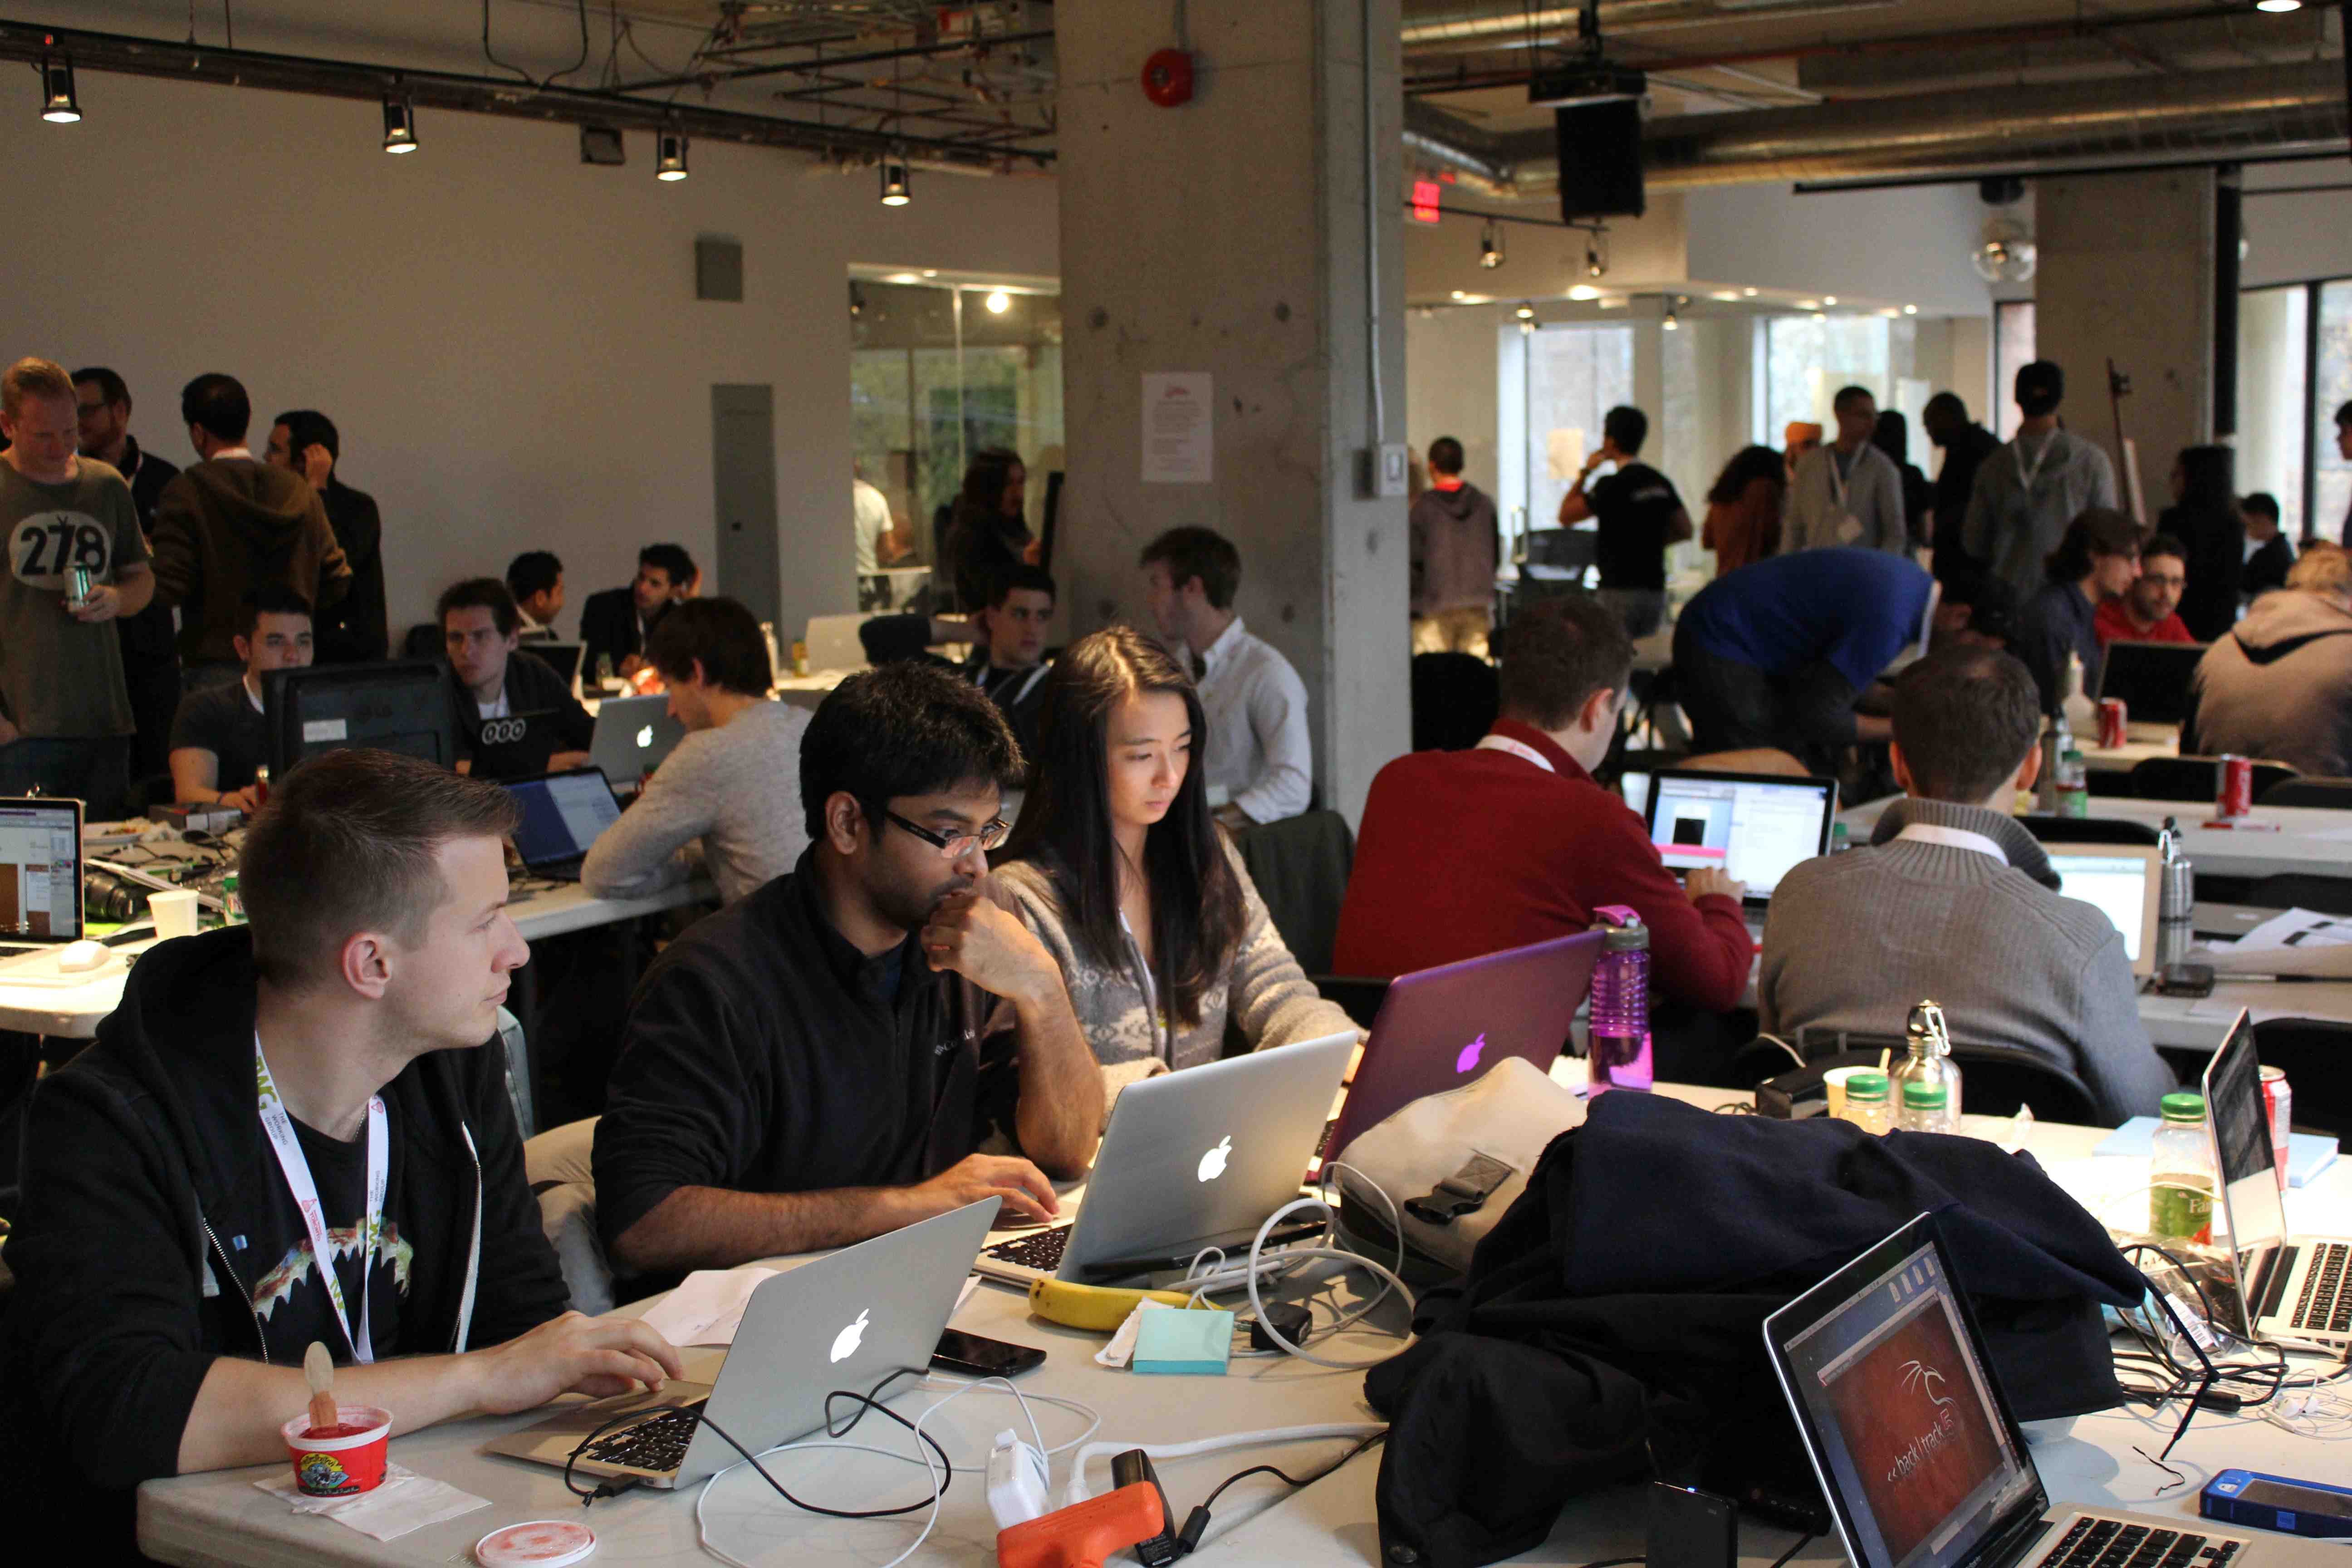 Startup Weekend Toronto : quelles différences avec les Startup Weekends de Nantes #swna #swtoronto